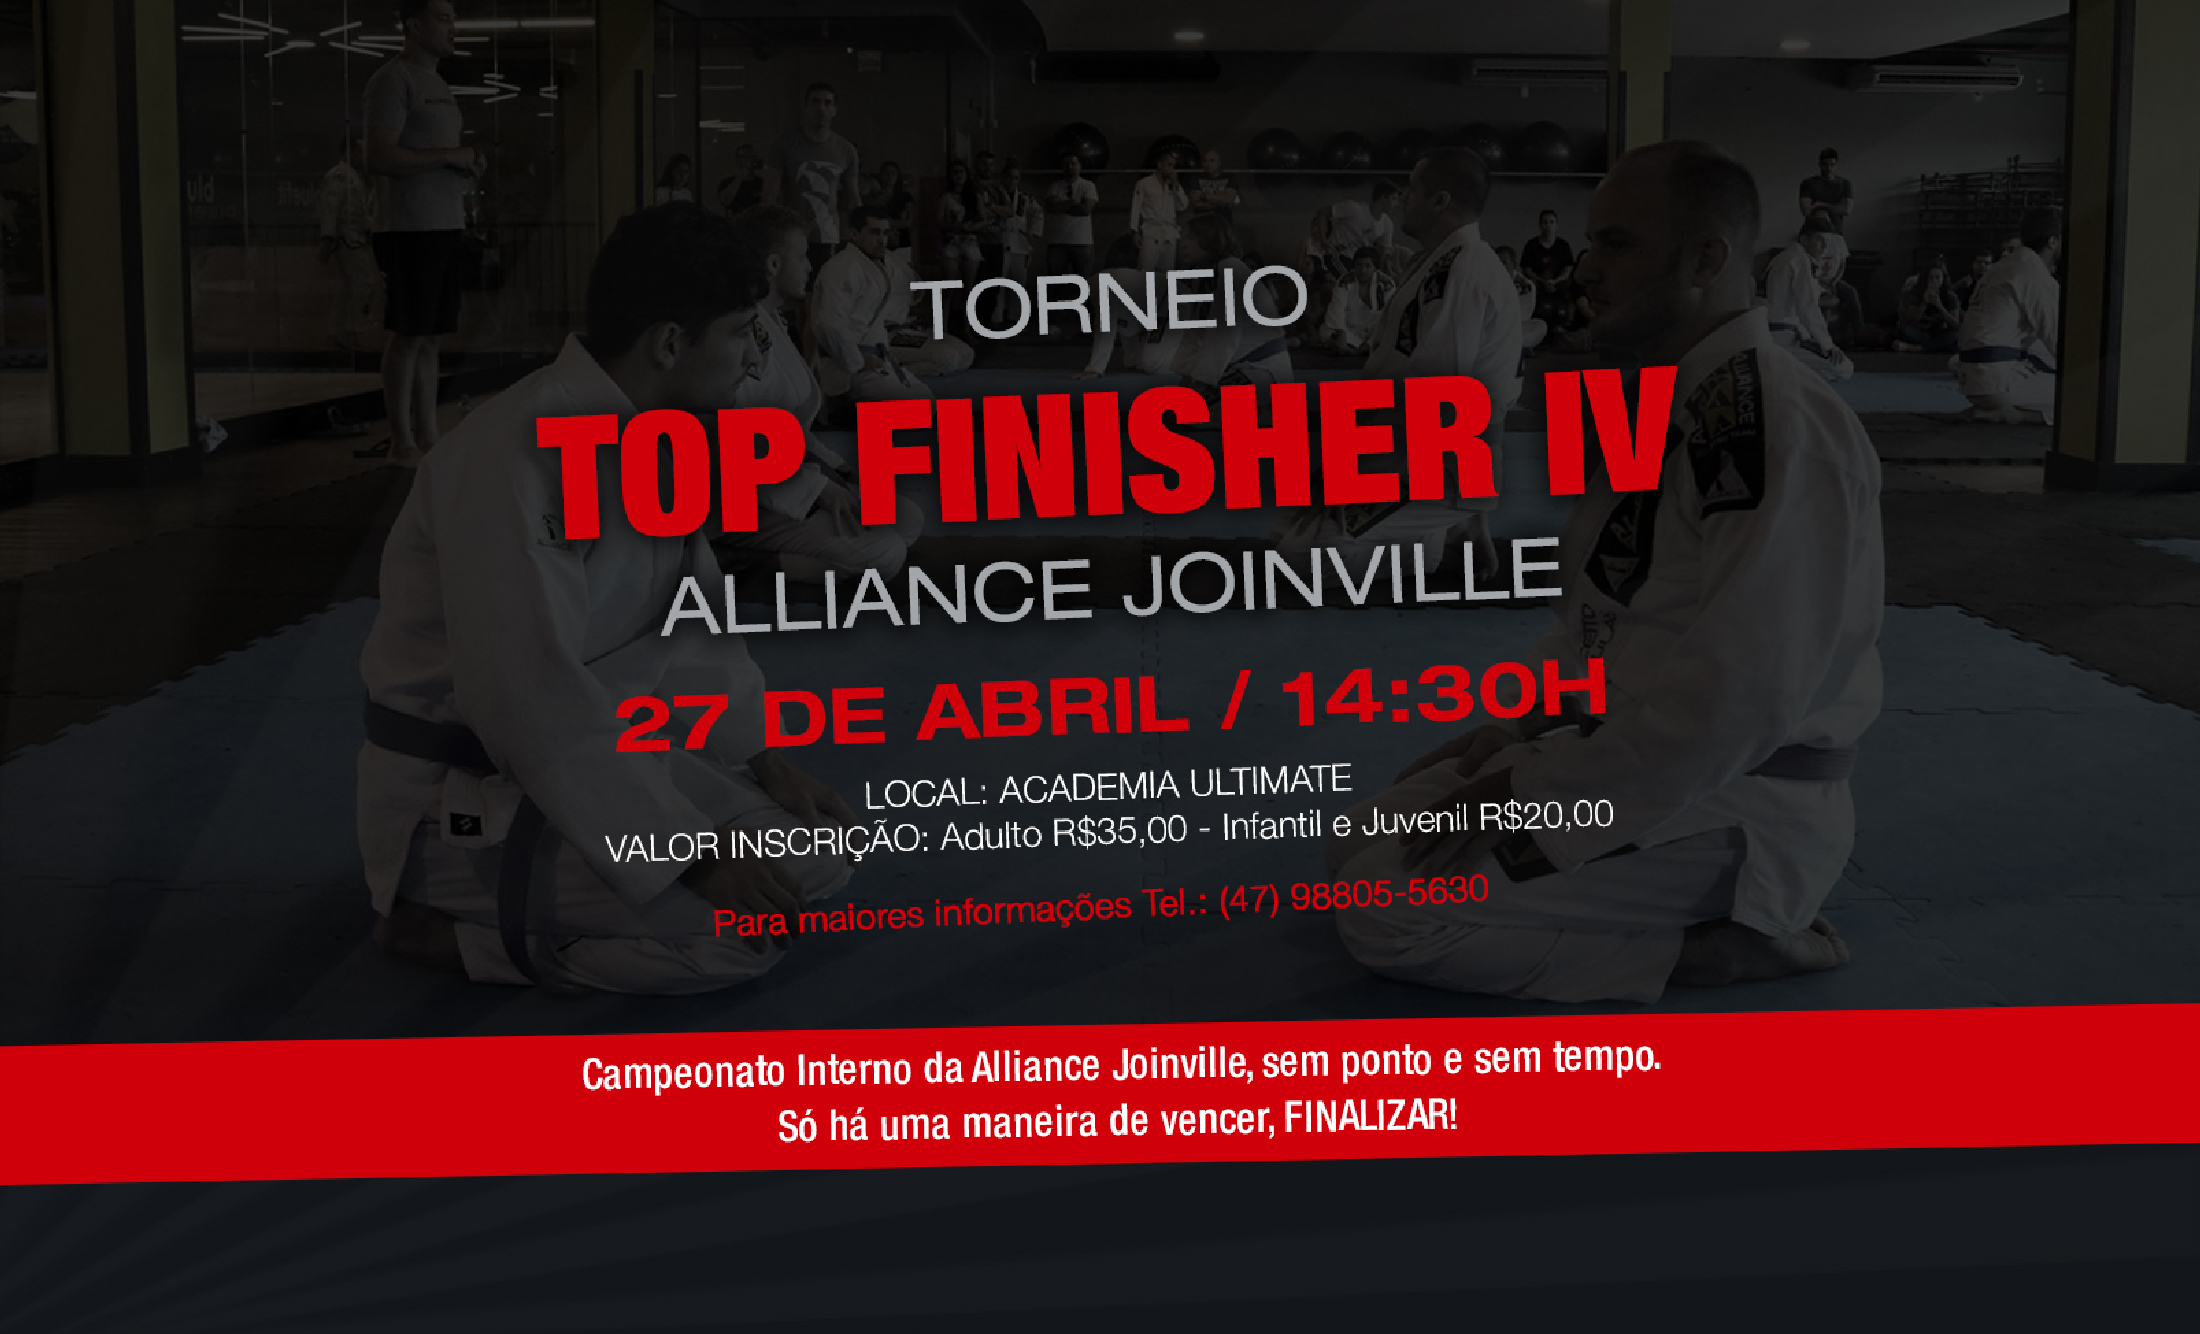 Torneio Top Finisher IV